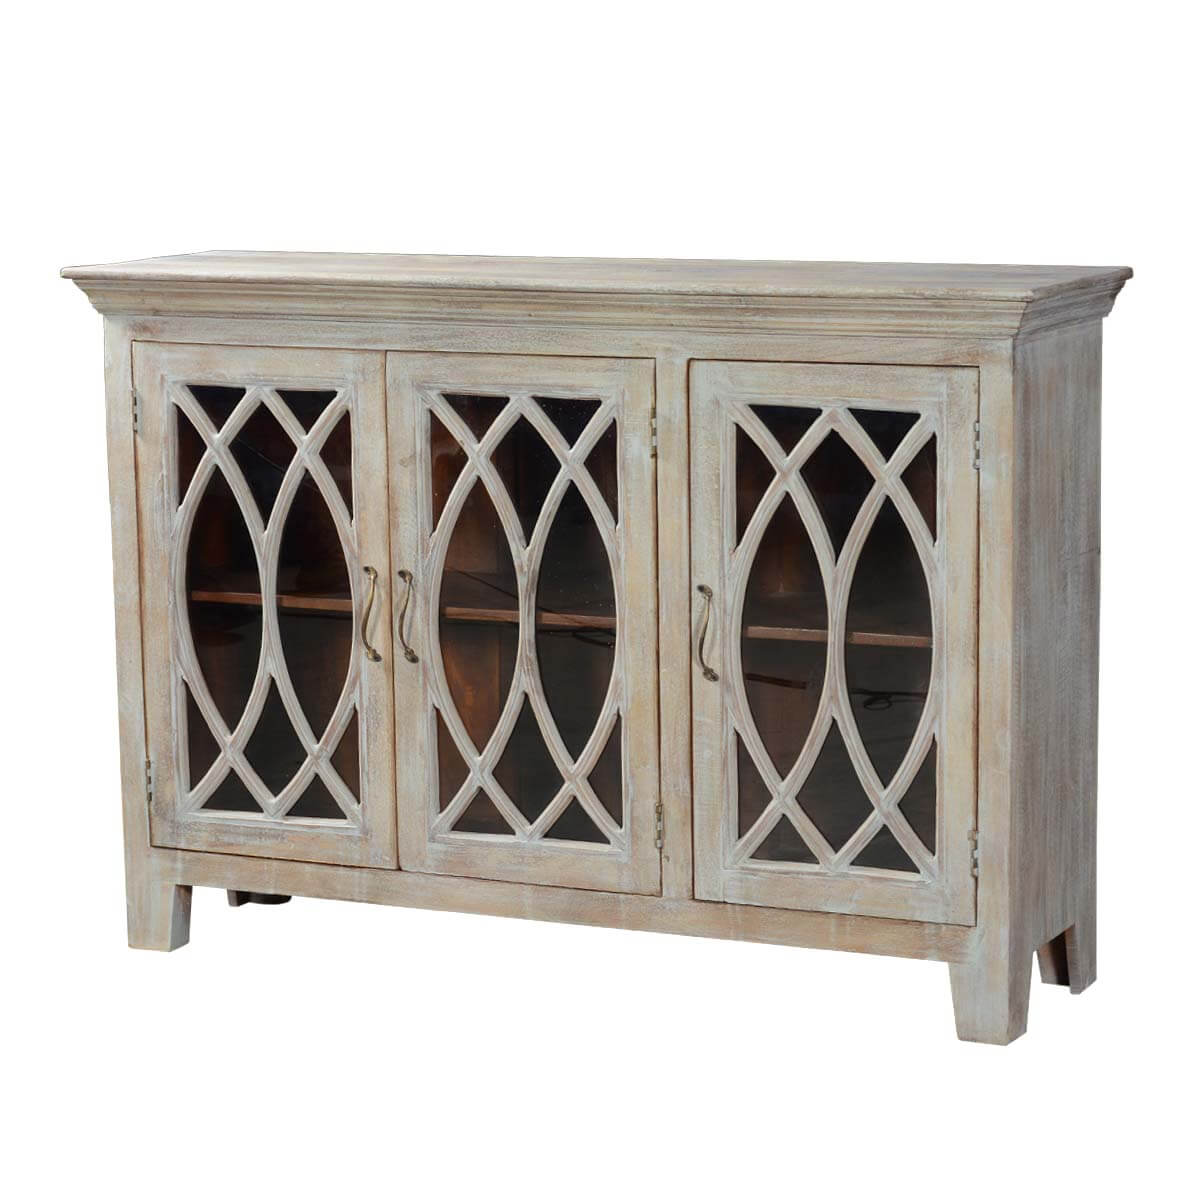 63 5 solid wood rustic buffet palisade glass door sideboard for Sideboard glas